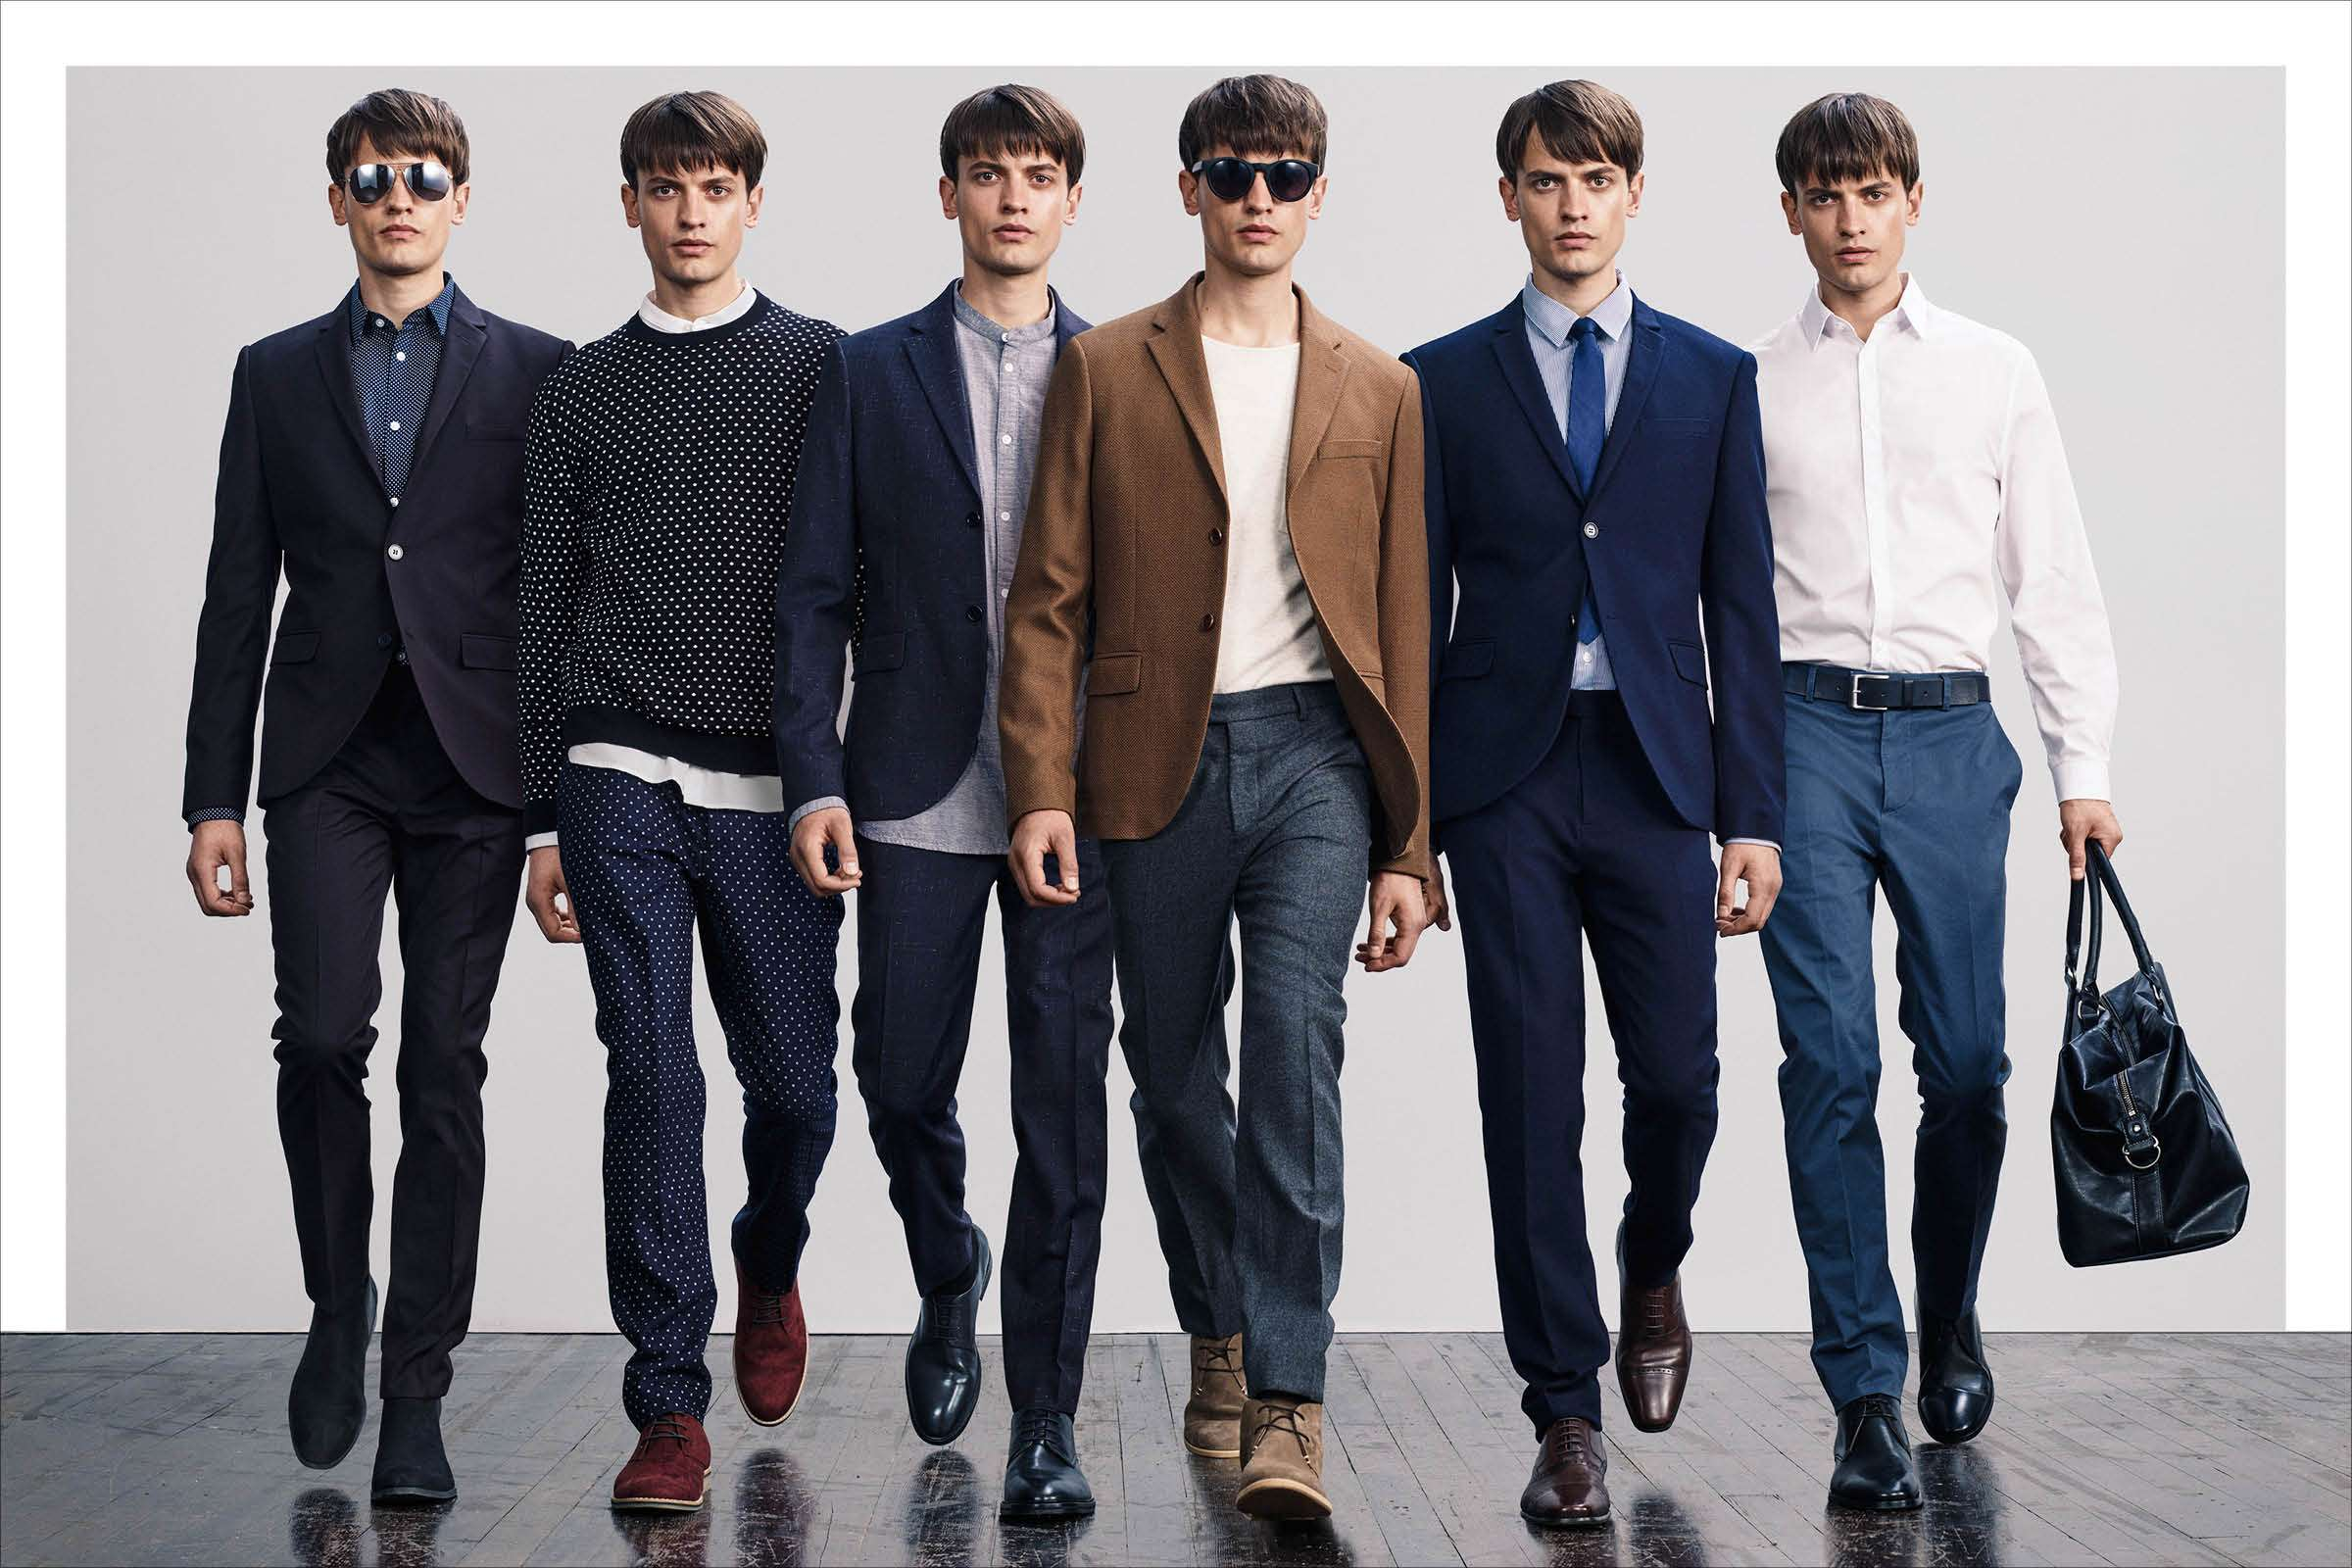 Watch Men's Footwear Guide: Updating The Classics video